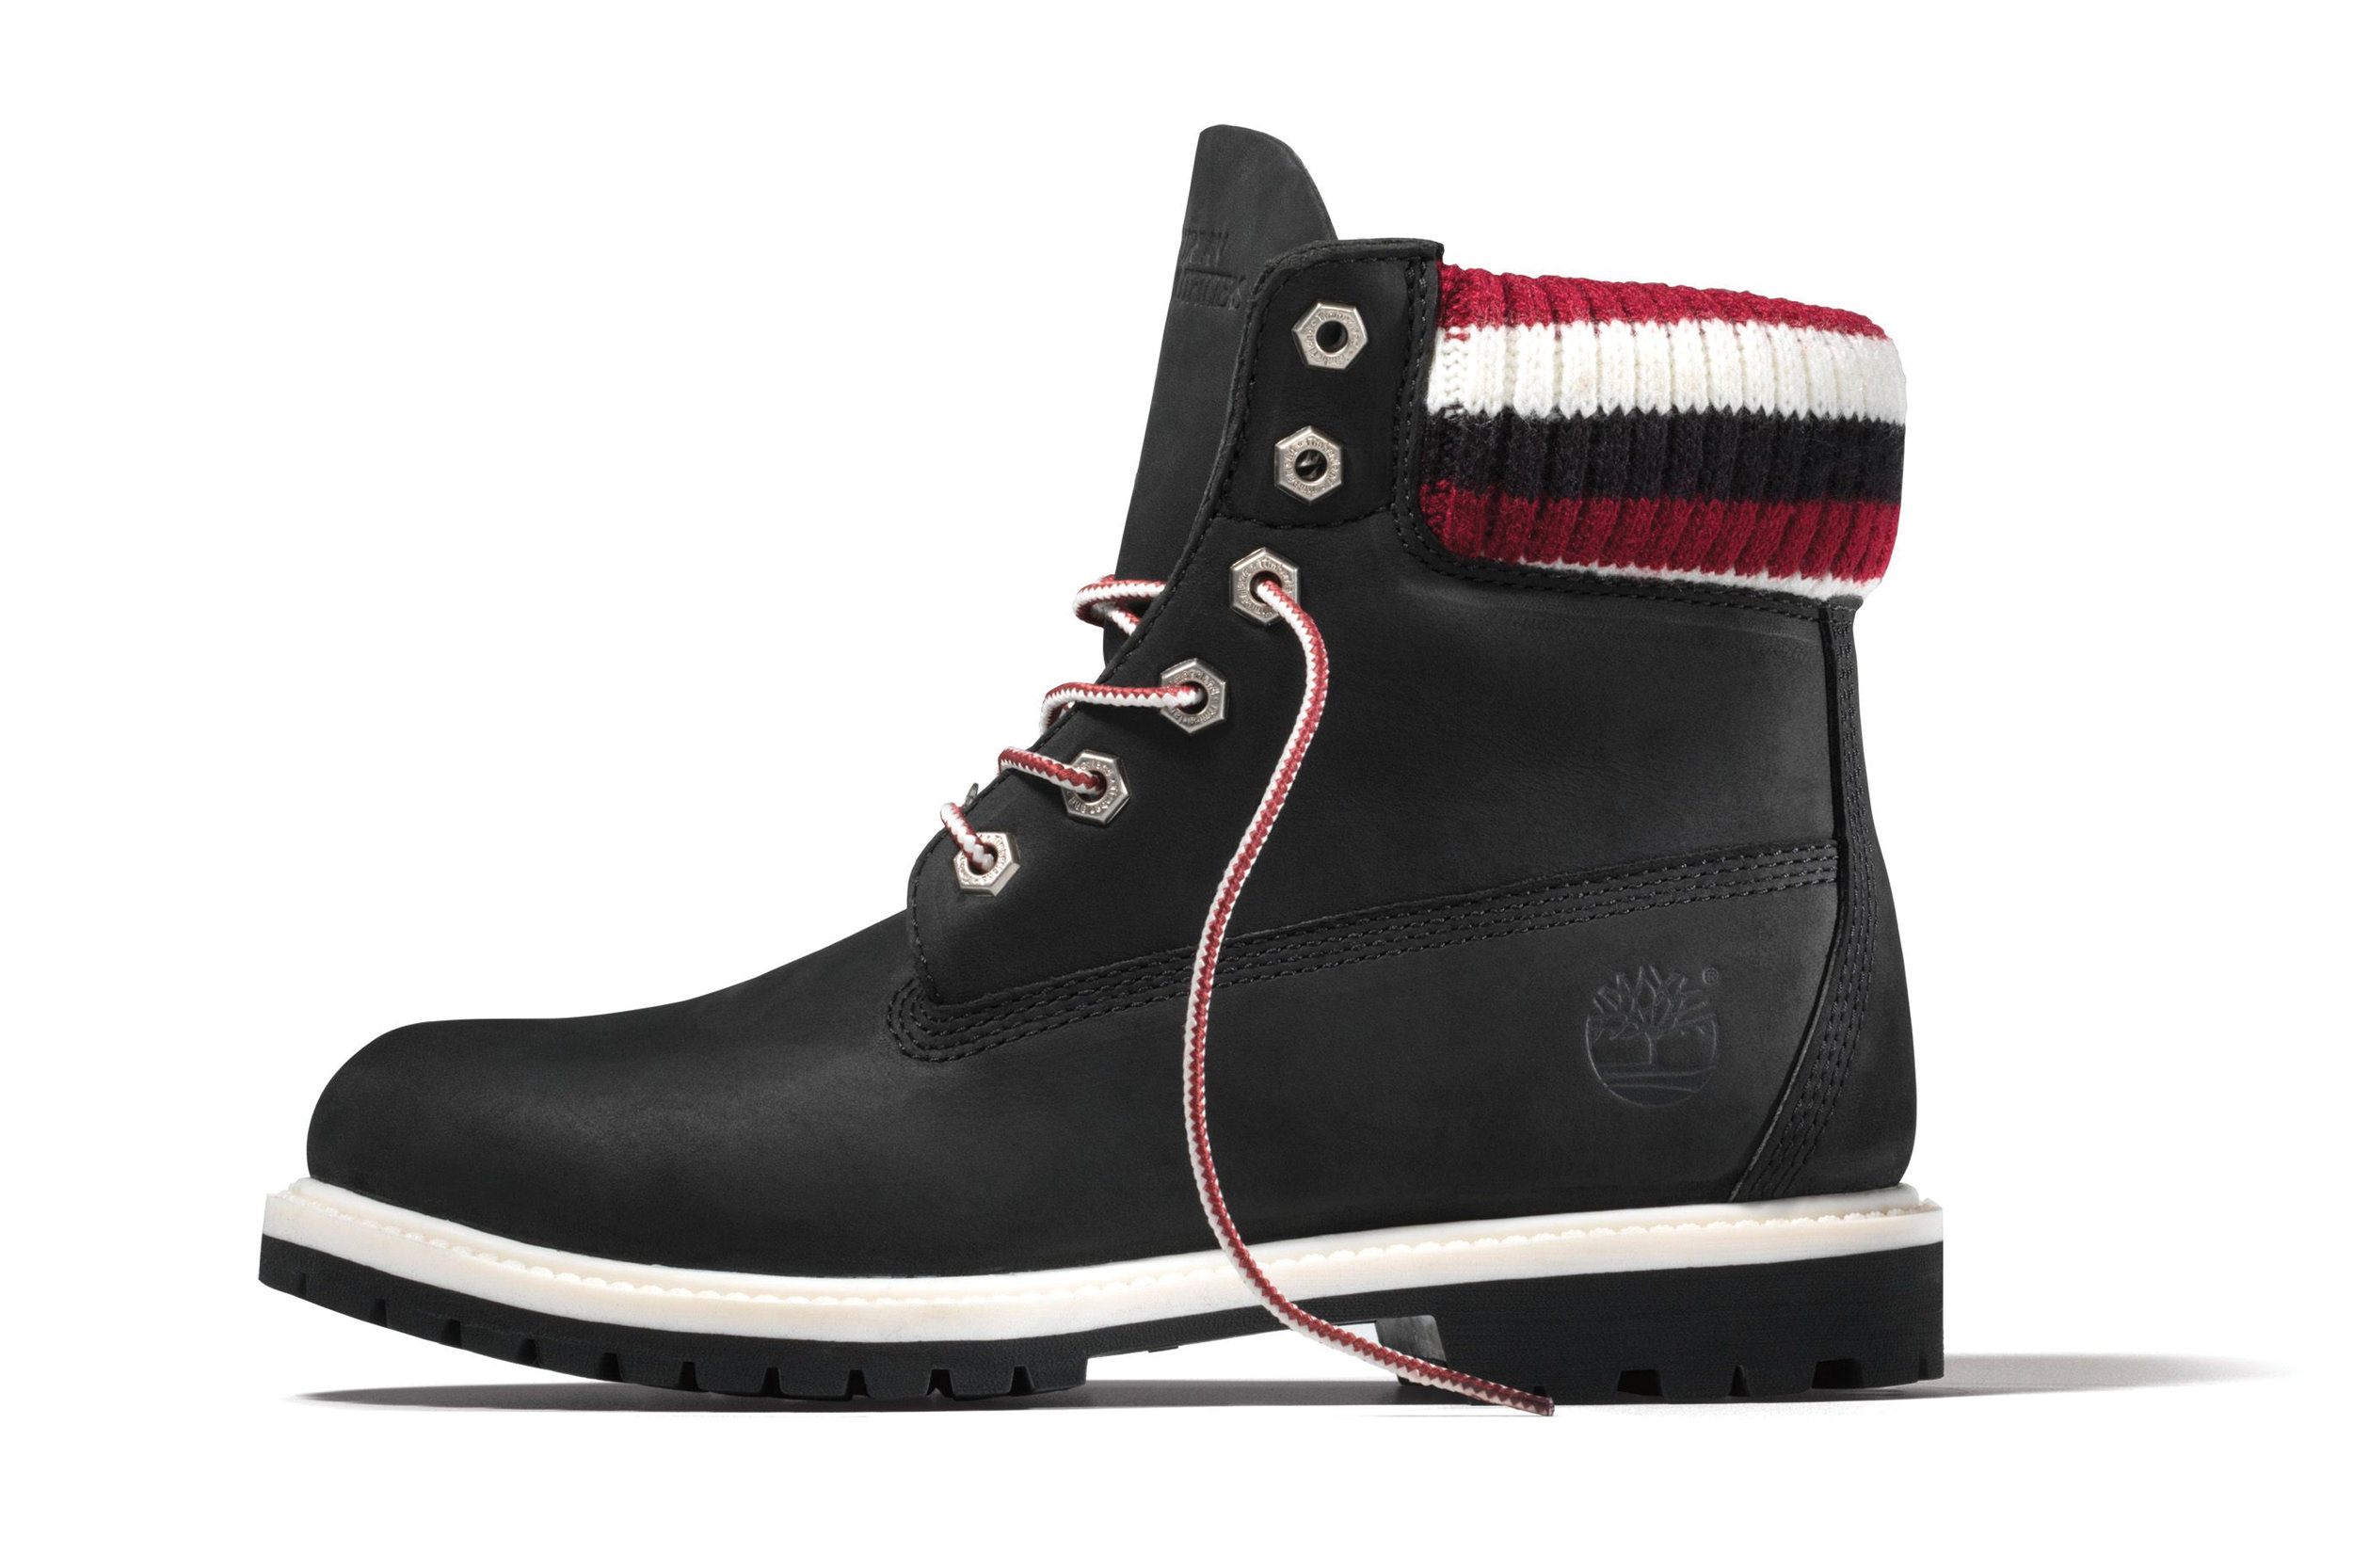 Urban outfitters X Timberland